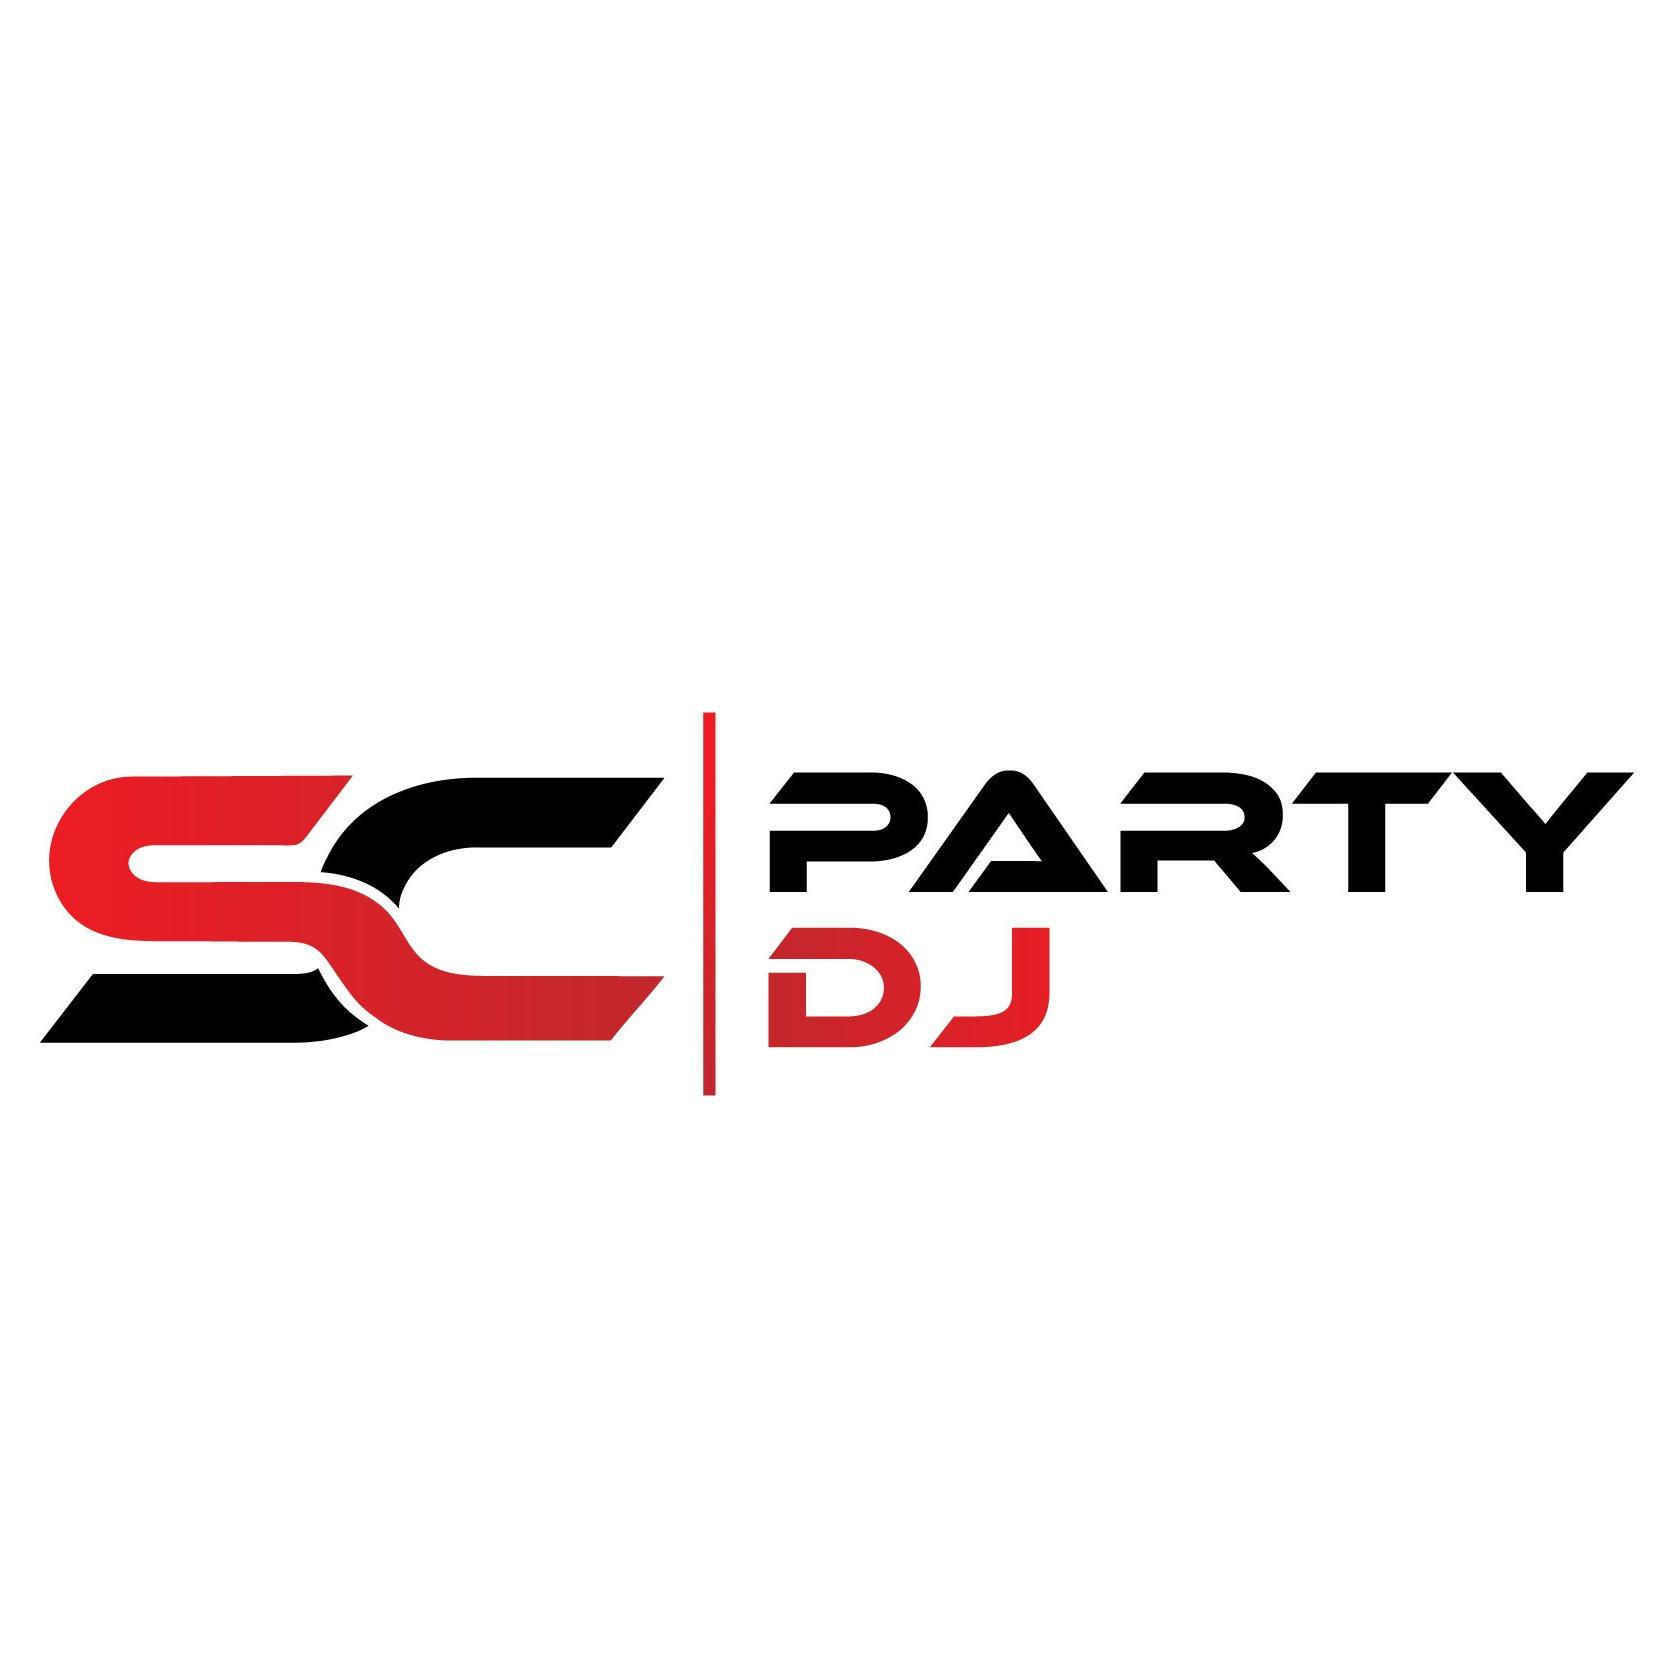 SC Party DJ image 8